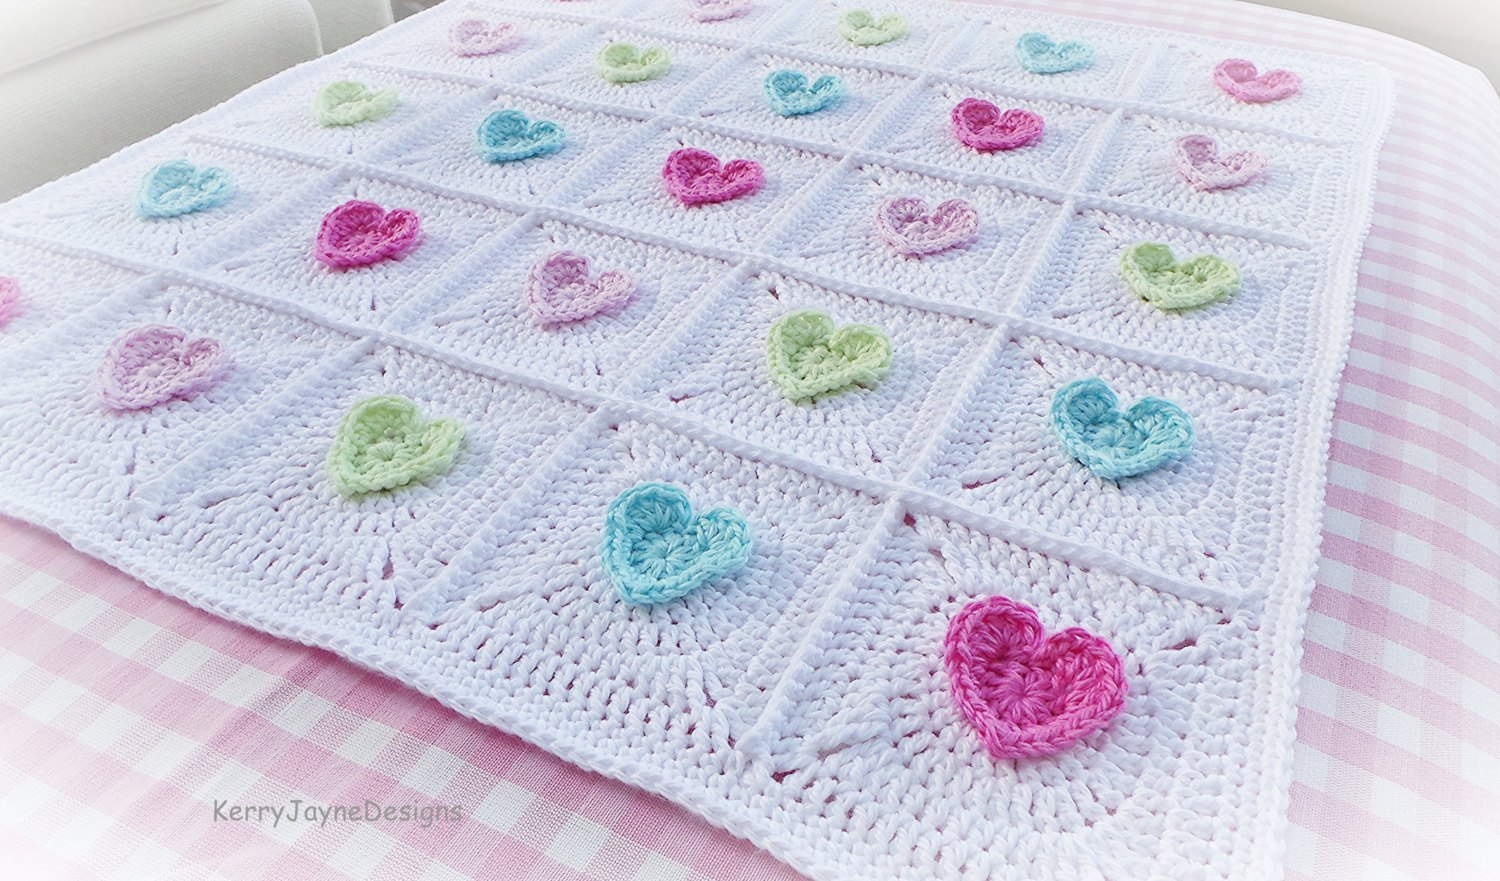 Free Baby Knitting Patterns Pinterest Topic For Pinterest Knitting Patterns Ba Blankets Free Crochet